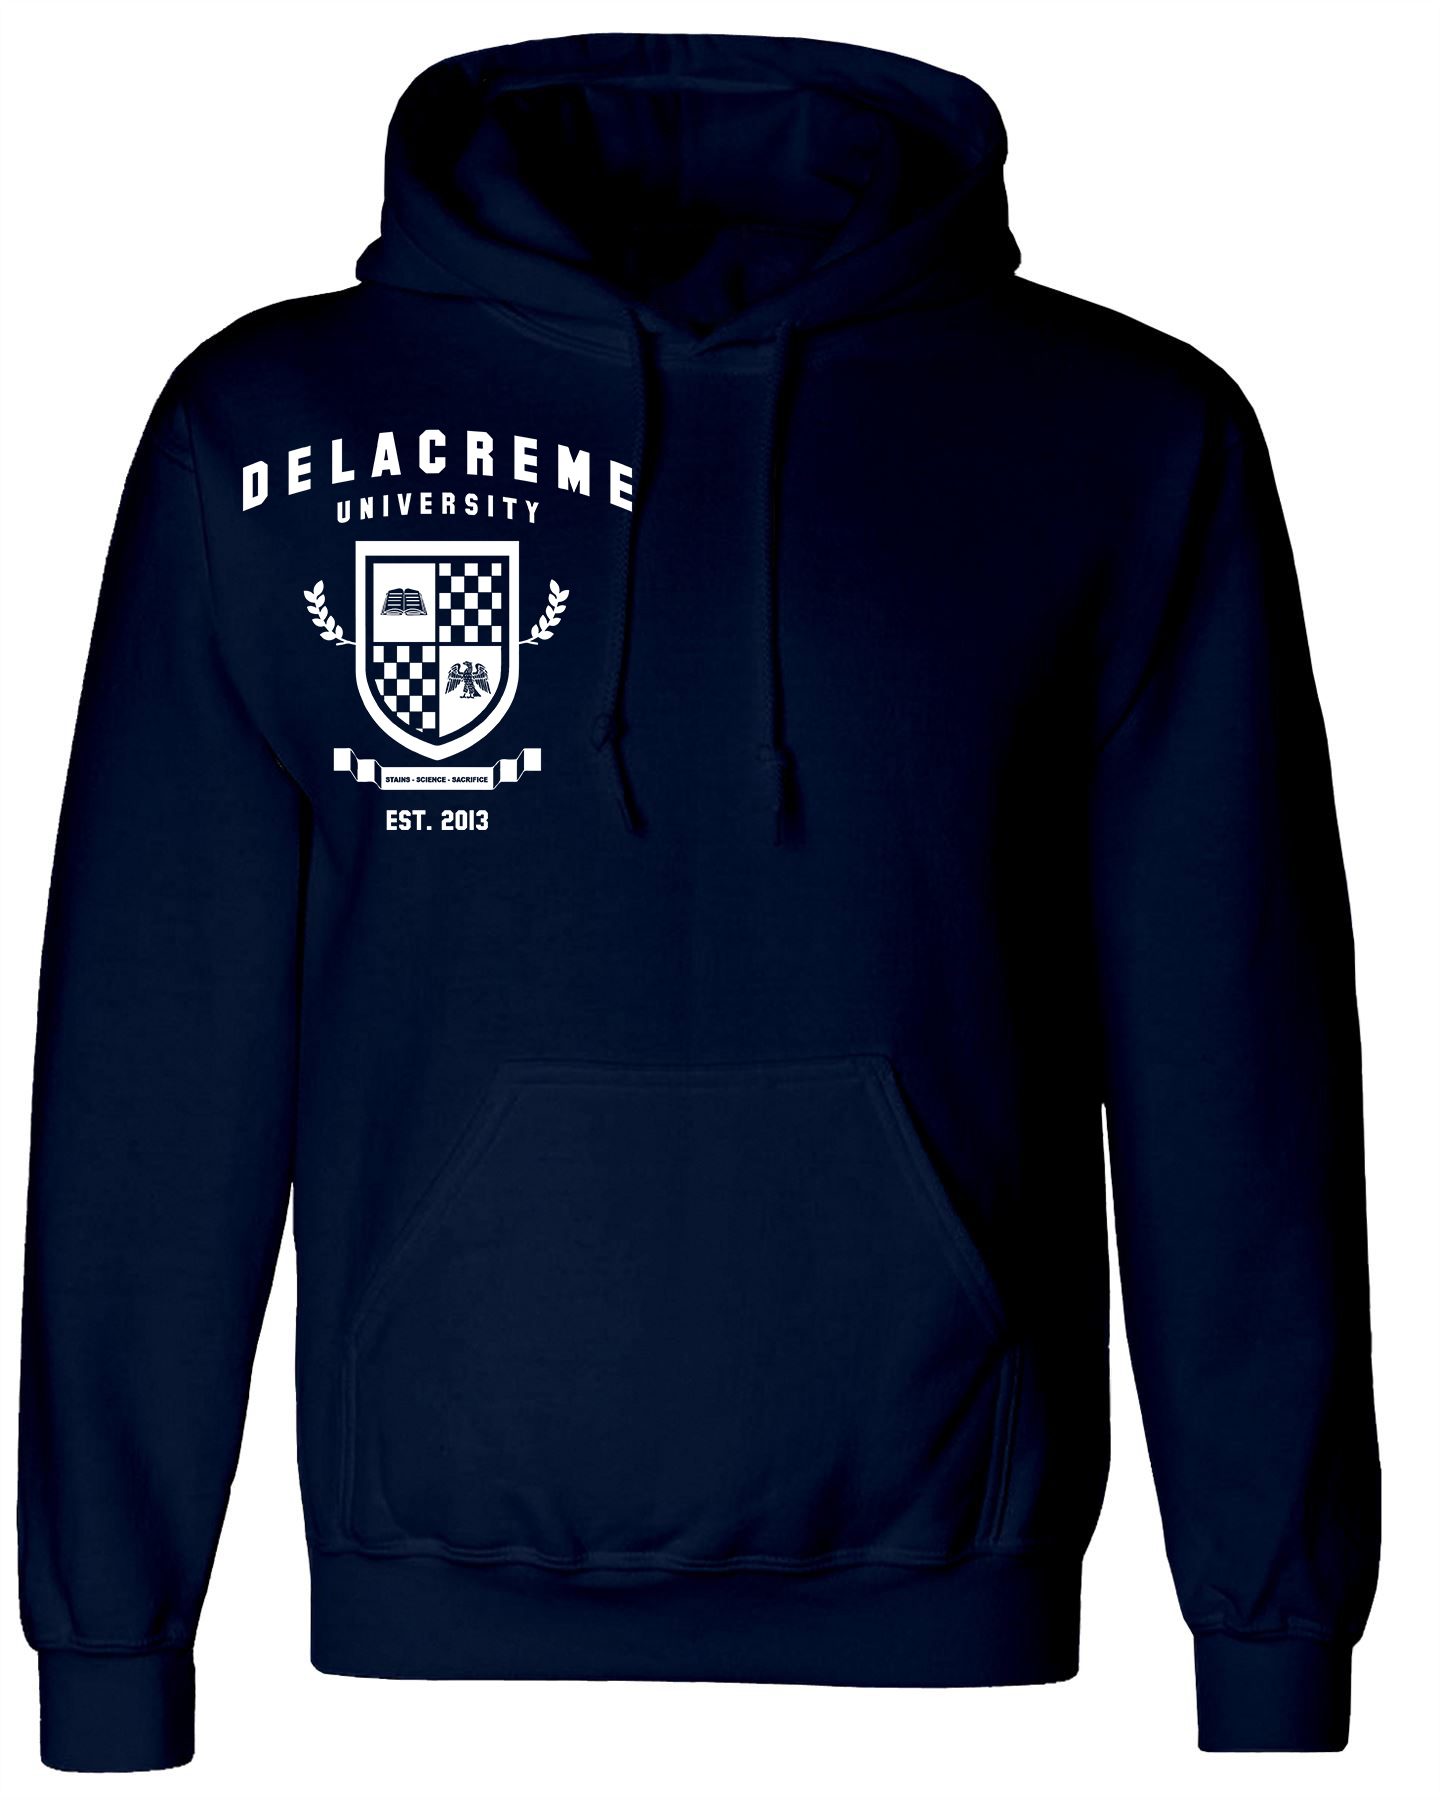 the delacreme hoodie -navy blue